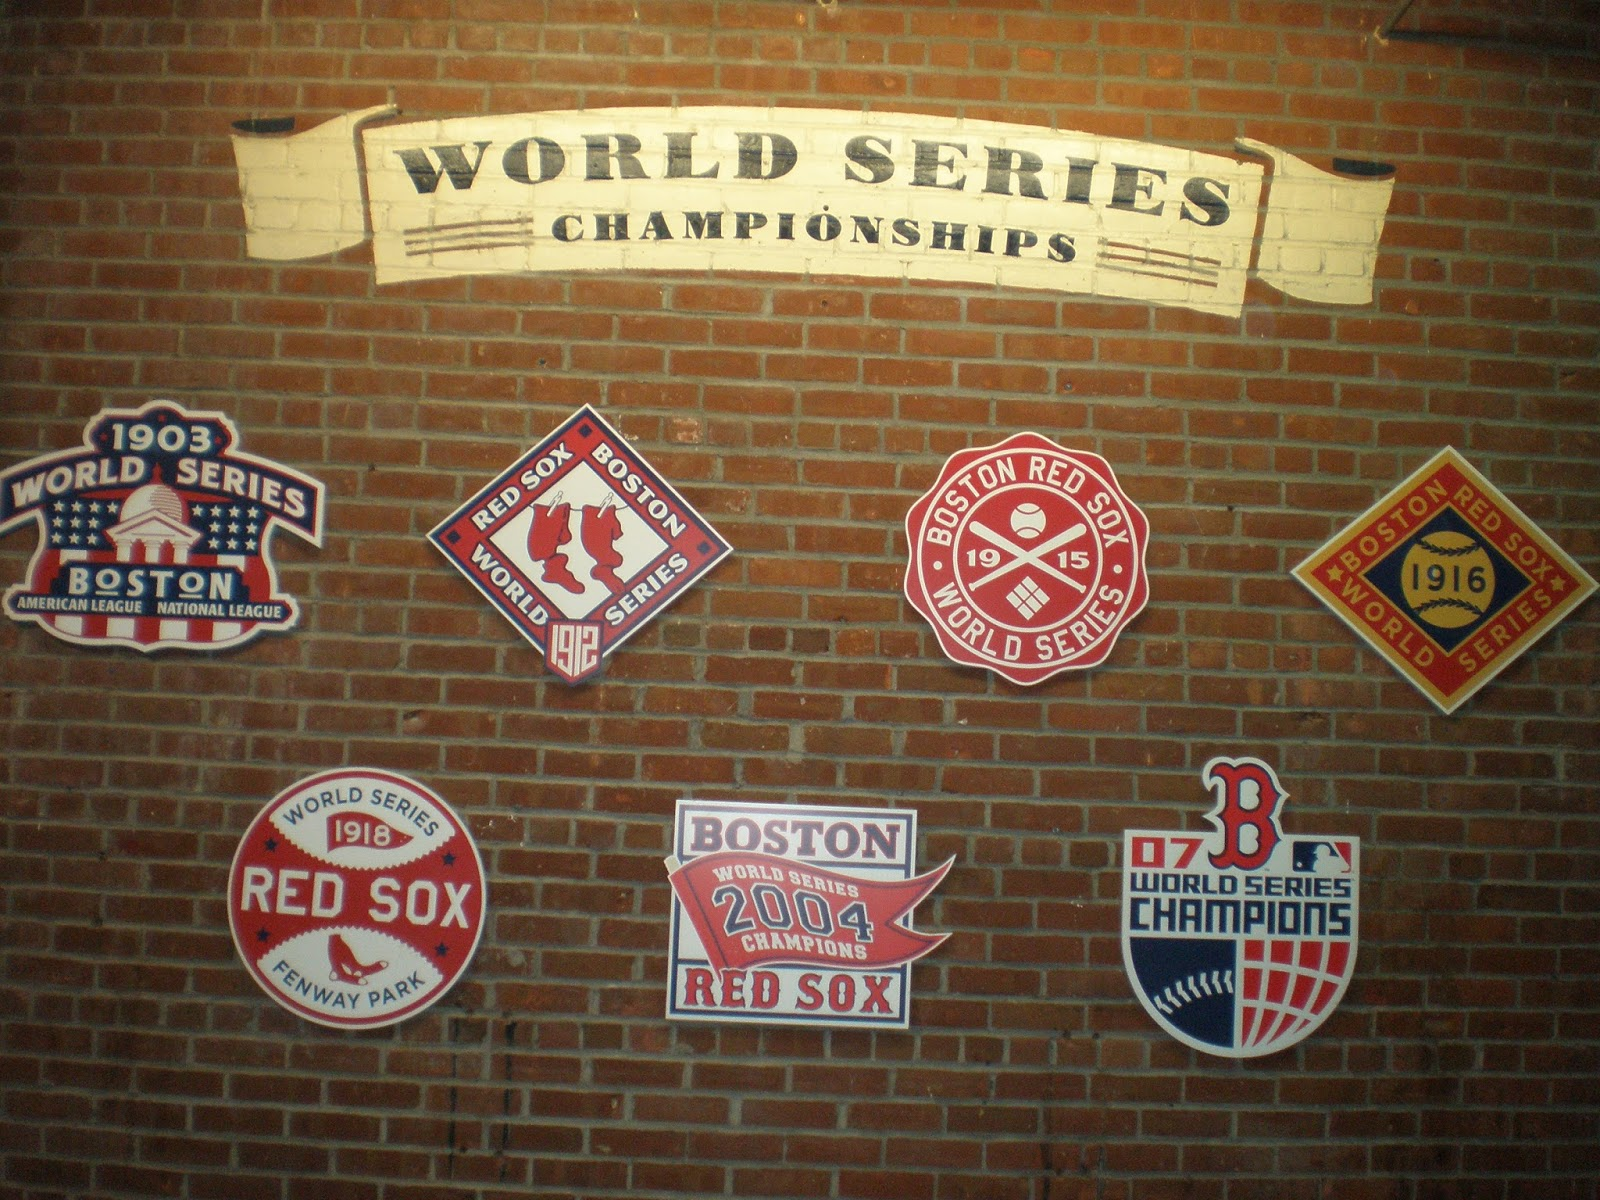 Boston, Red Sox, baseball, mlb, Fenway Park, Green Monster, tour, yawkey way, red seat, world series, babe ruth, tourist, travel, travelling, Massachusetts, MA, dropkick murphys, history, 1912,